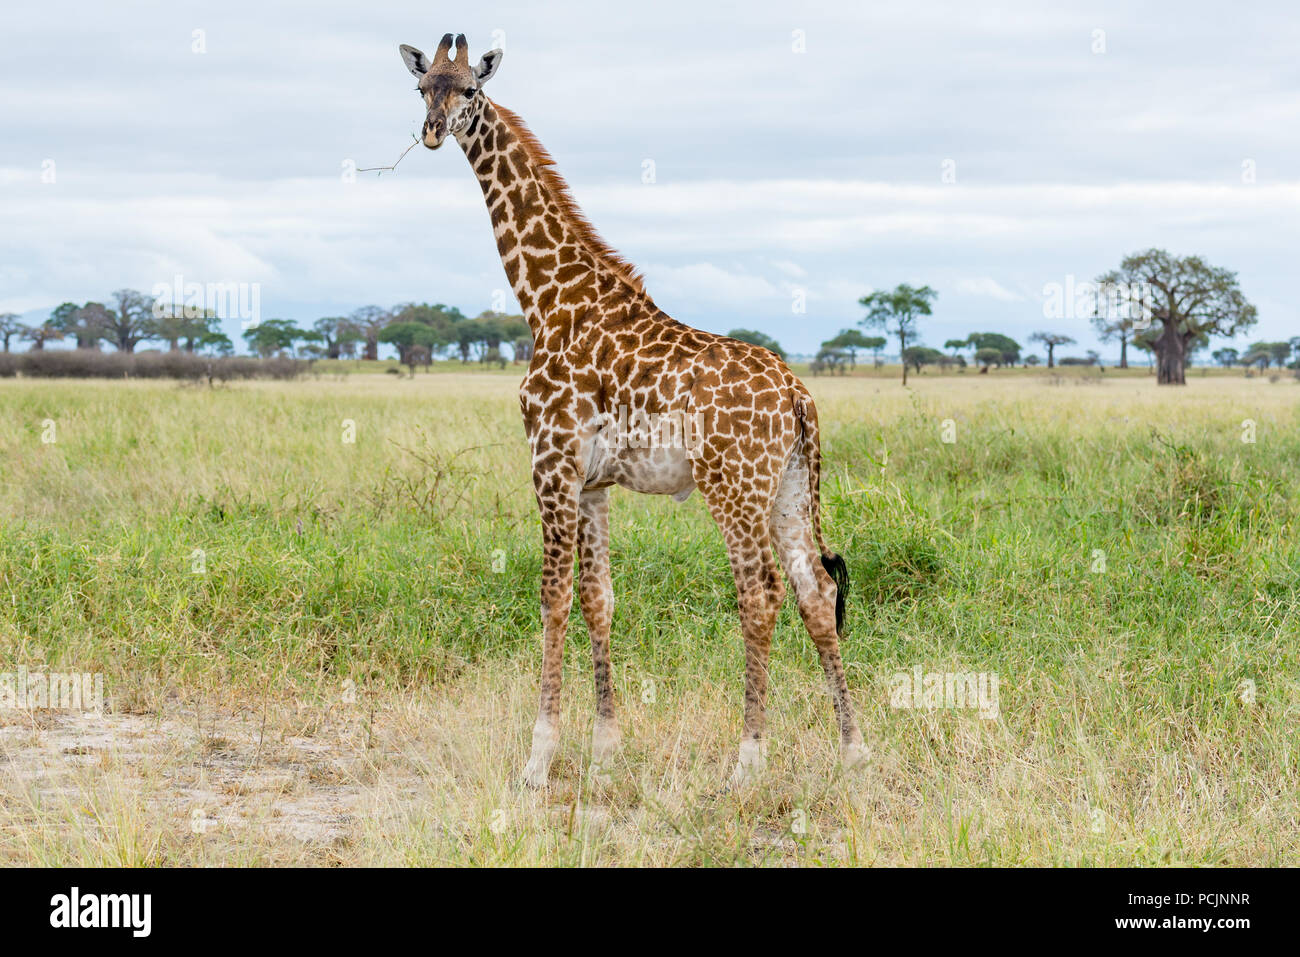 Giraffe Walking Across the Savannah in Tanzania - Stock Image